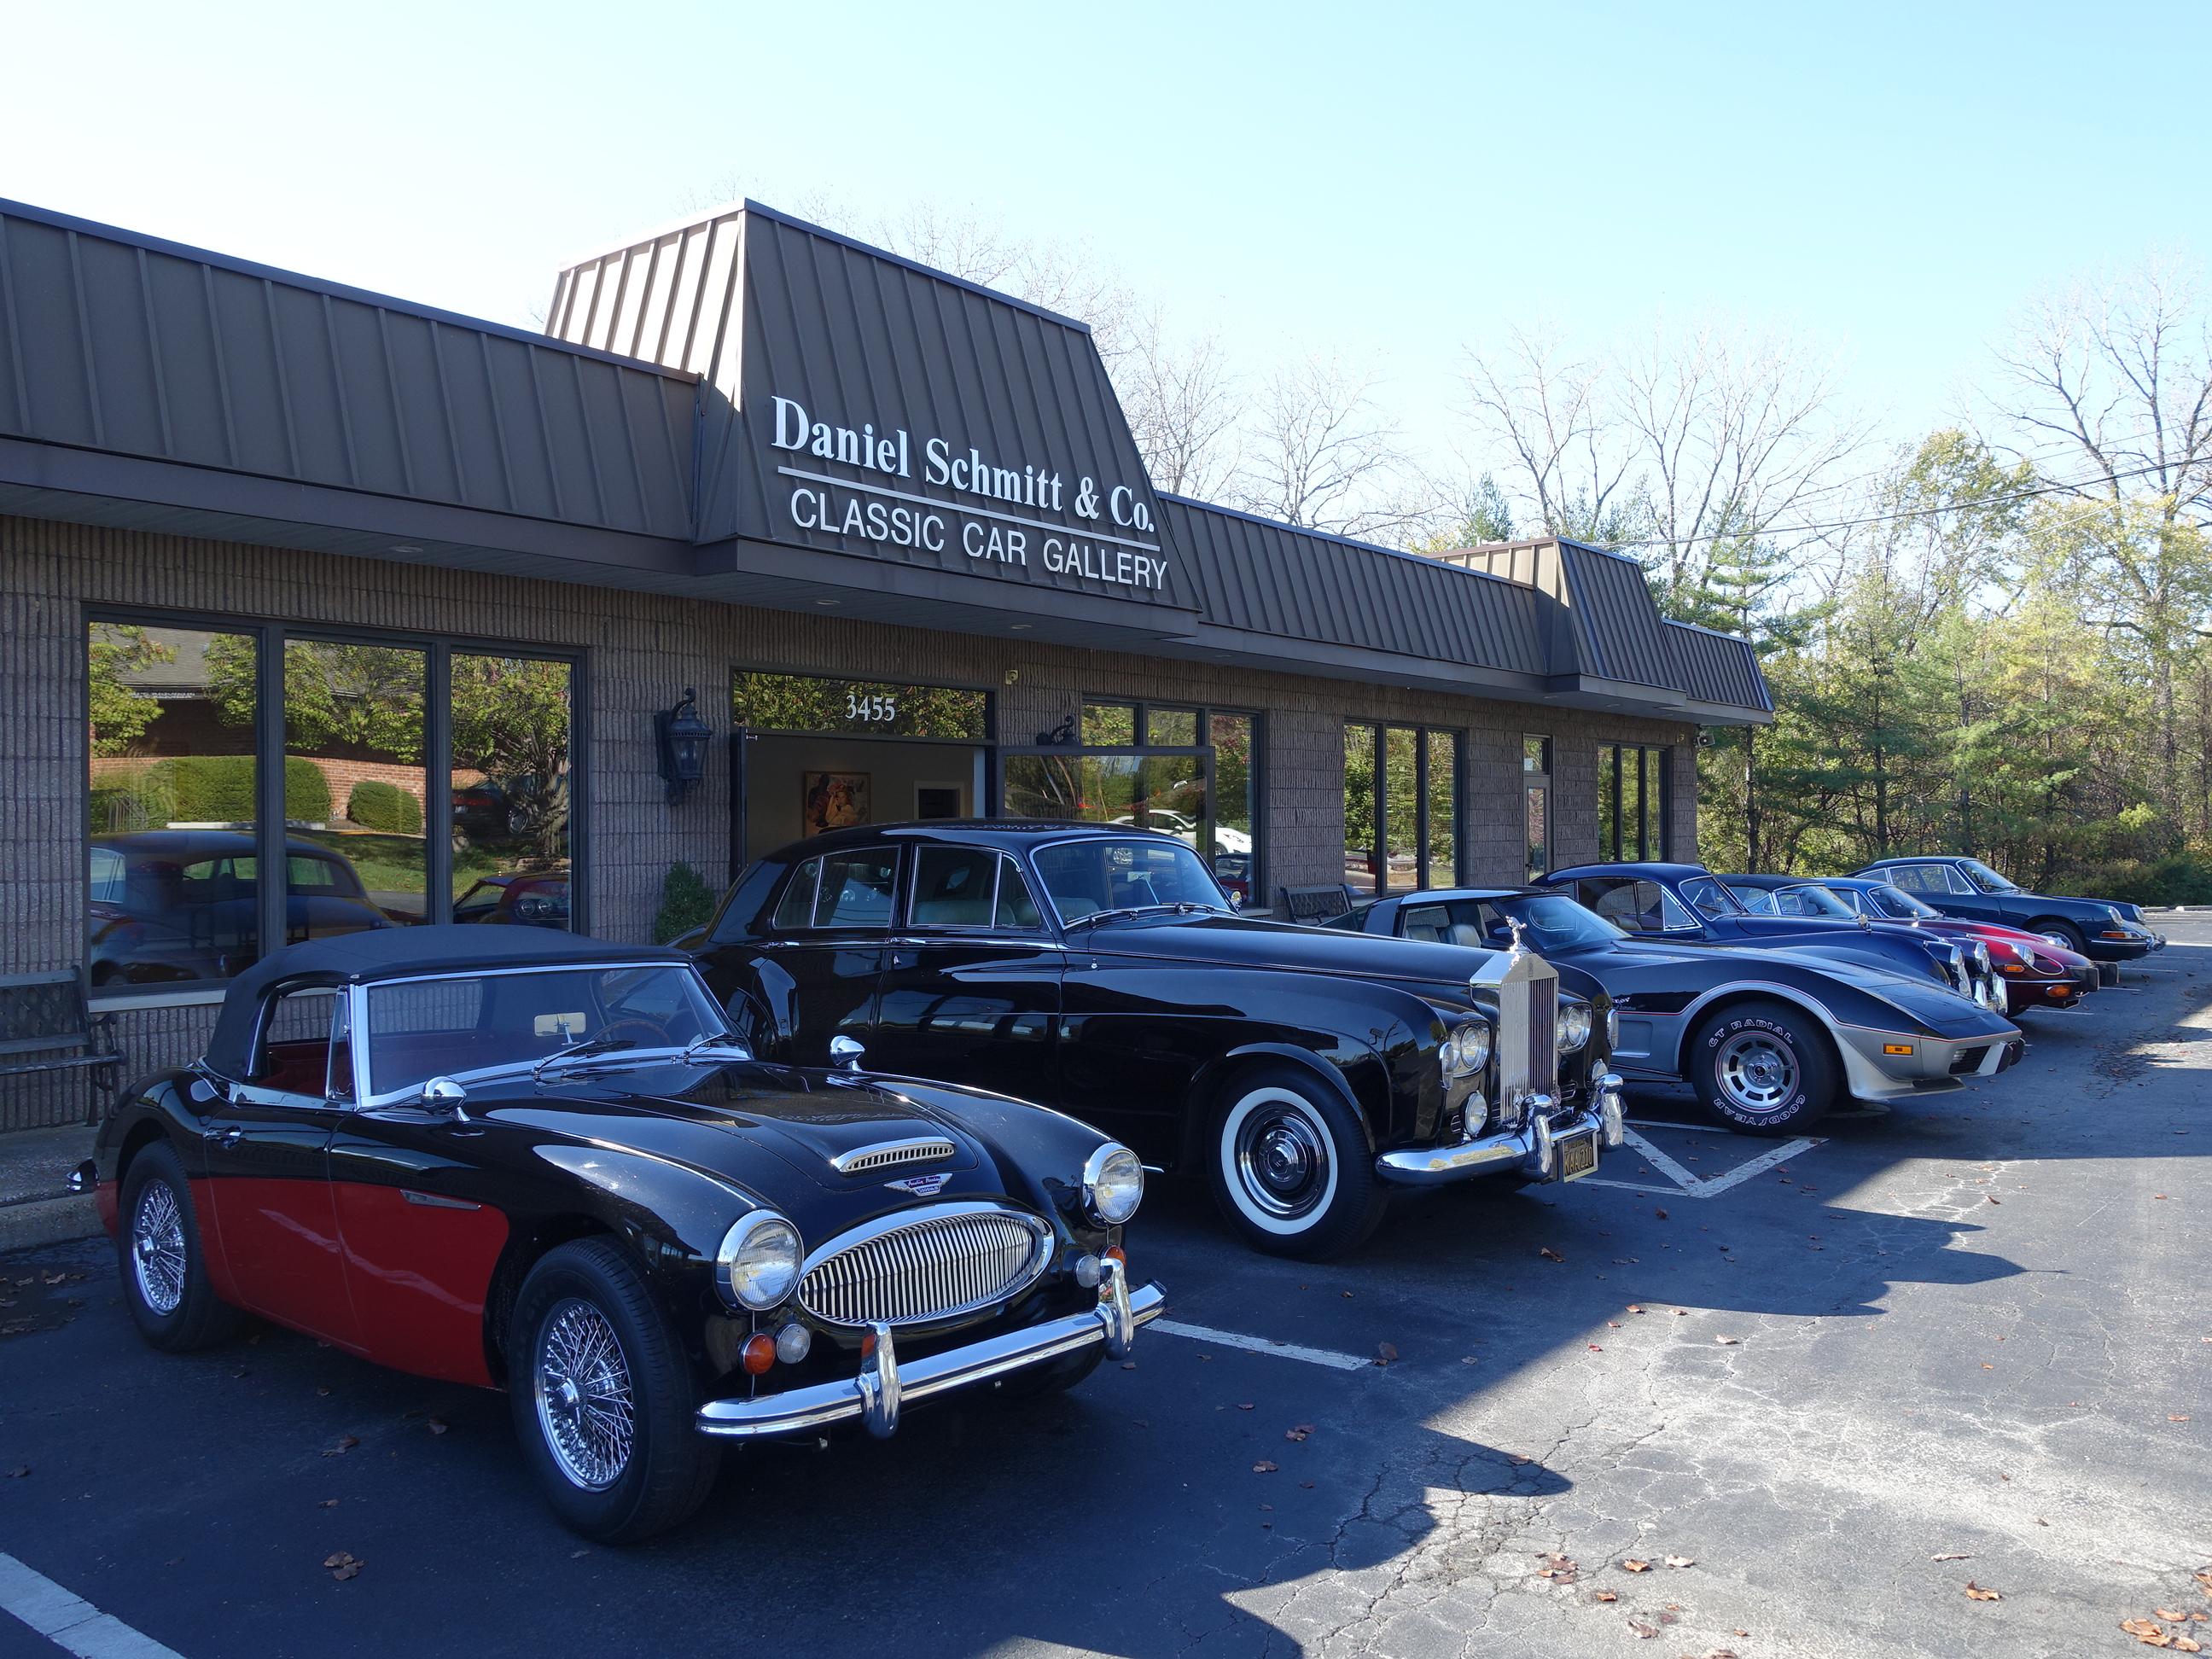 Daniel Schmitt & Co. Classic Car Gallery St. Louis, classic cars for sale, daniel schmitt lower showroom, luxury cars for sale, vintage and collector cars